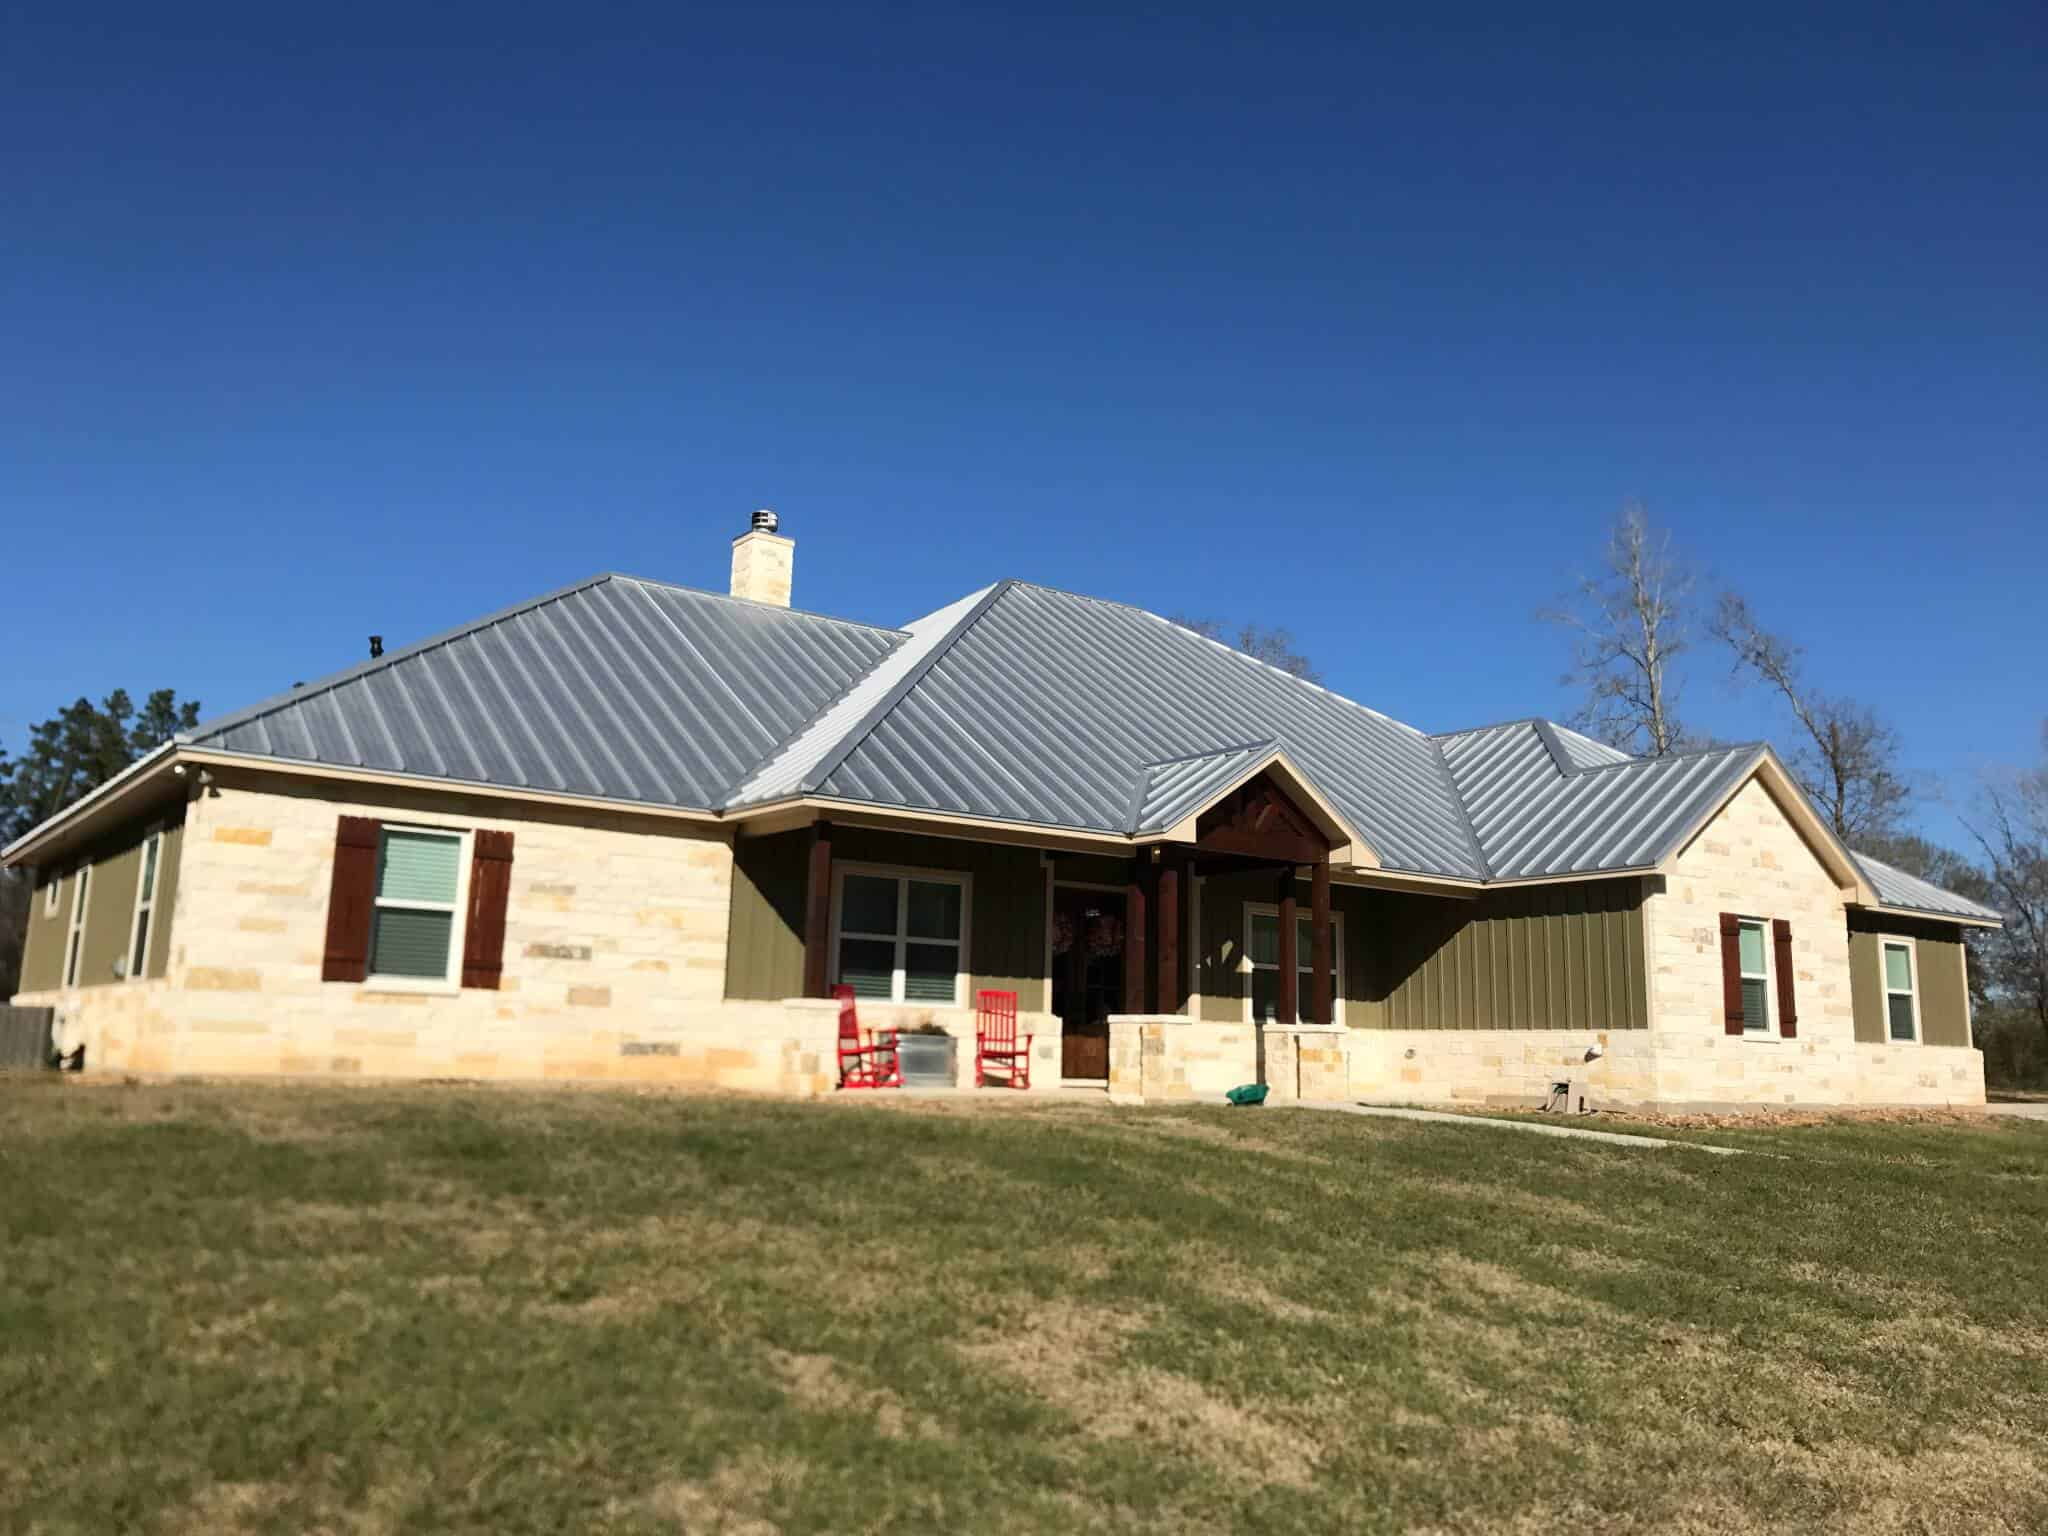 Magnolia TX metal roofing prices